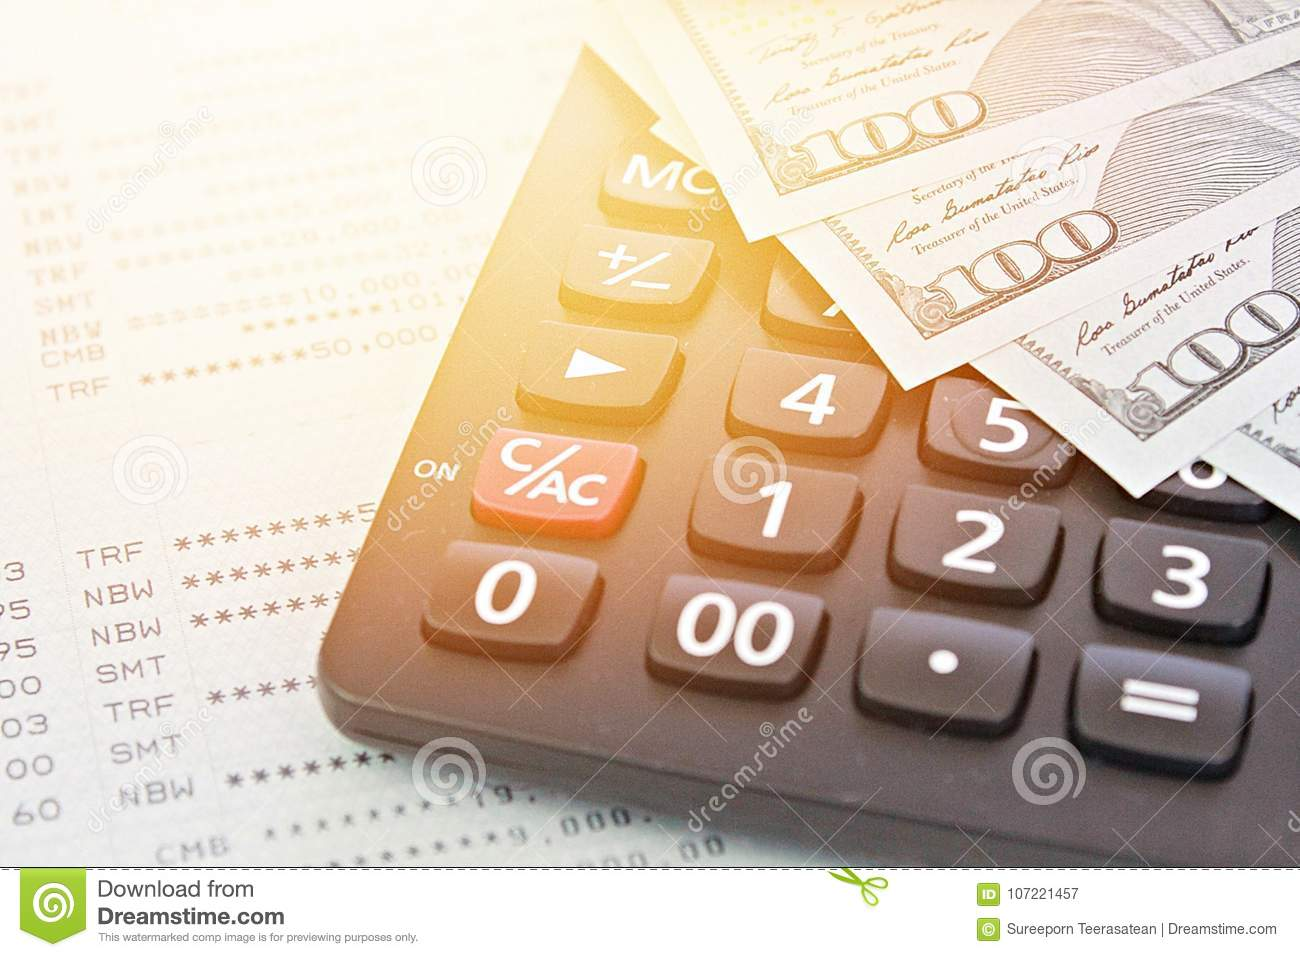 American dollars cash money calculator on savings account passbook royalty free stock photo colourmoves